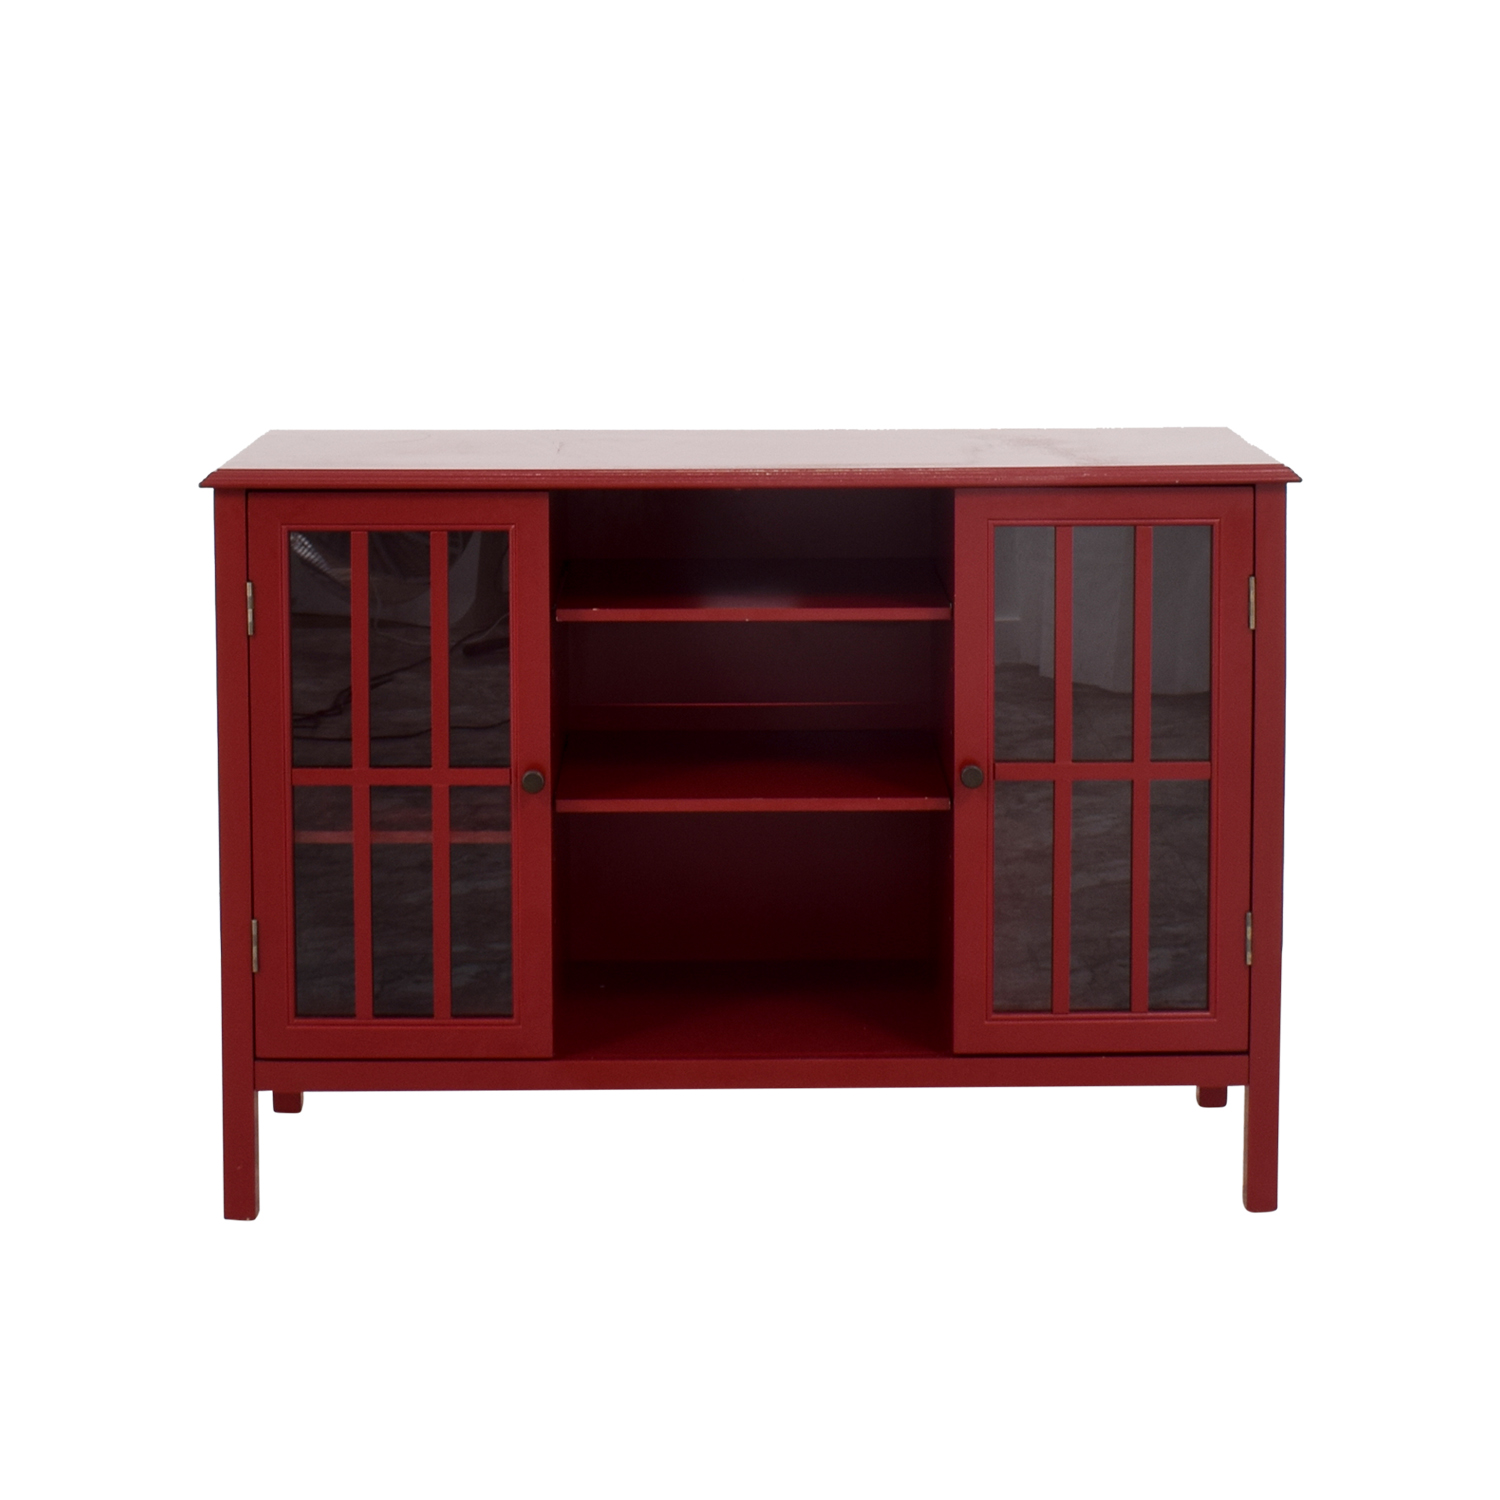 off target windham two door cabinet with shelves storage accent table for small round drawer carpet transition trim wrought iron coffee glass top garden furniture side tables red